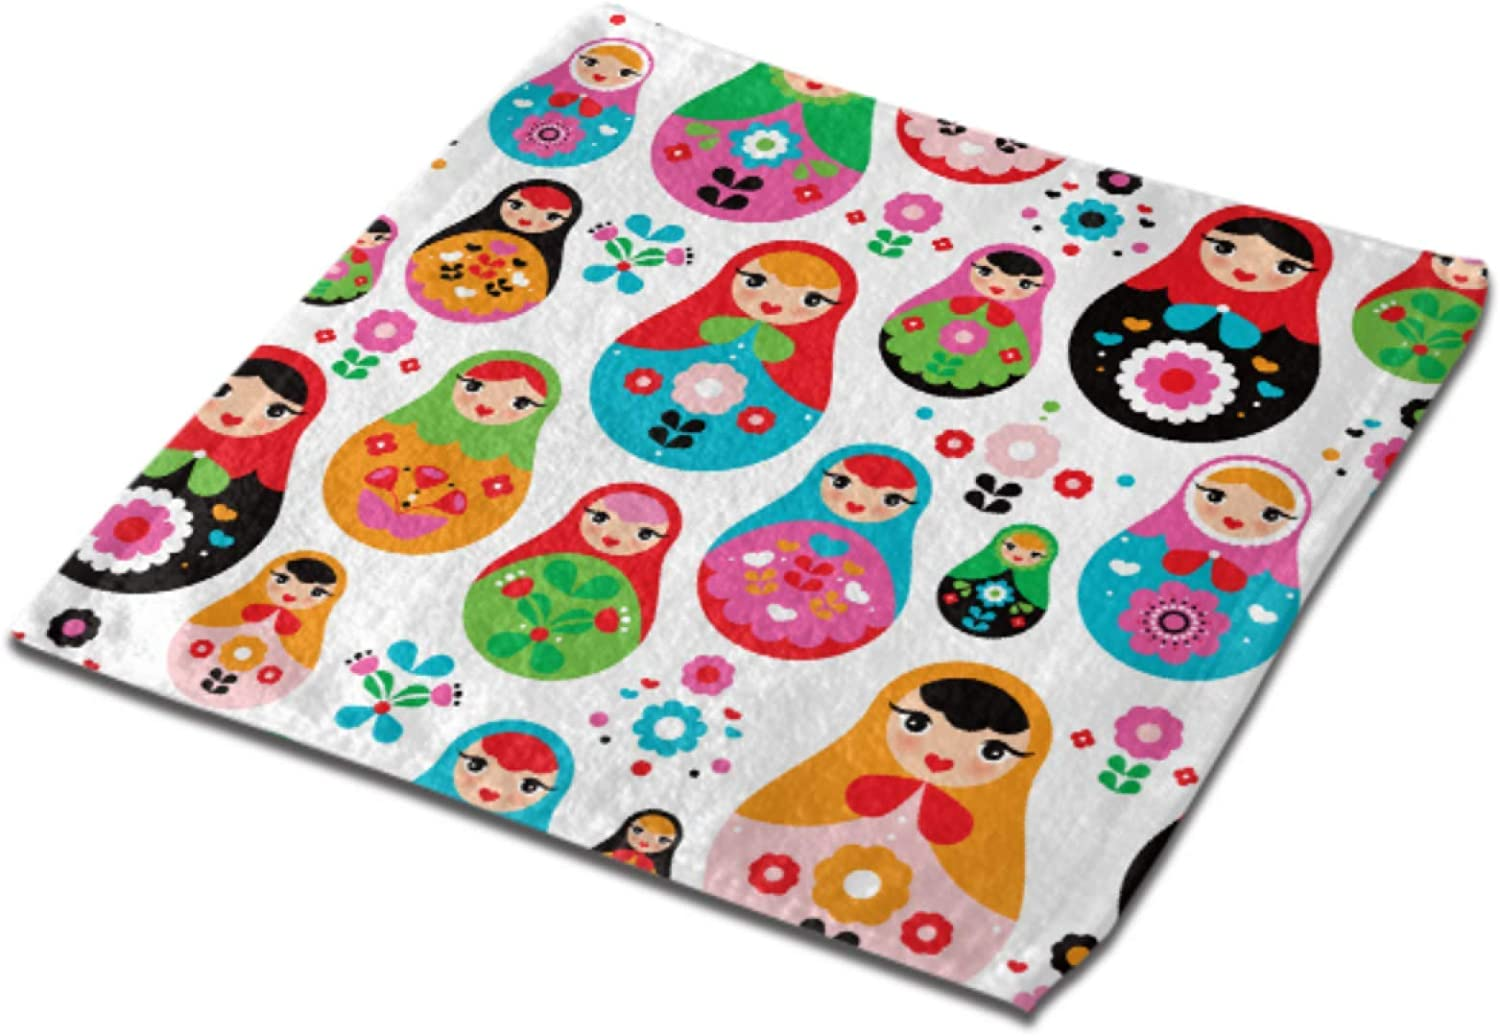 A surprise price is Cheap mail order shopping realized Russian Doll Matryoshka Folk Cleaning Inches 13x13 Superf Towels